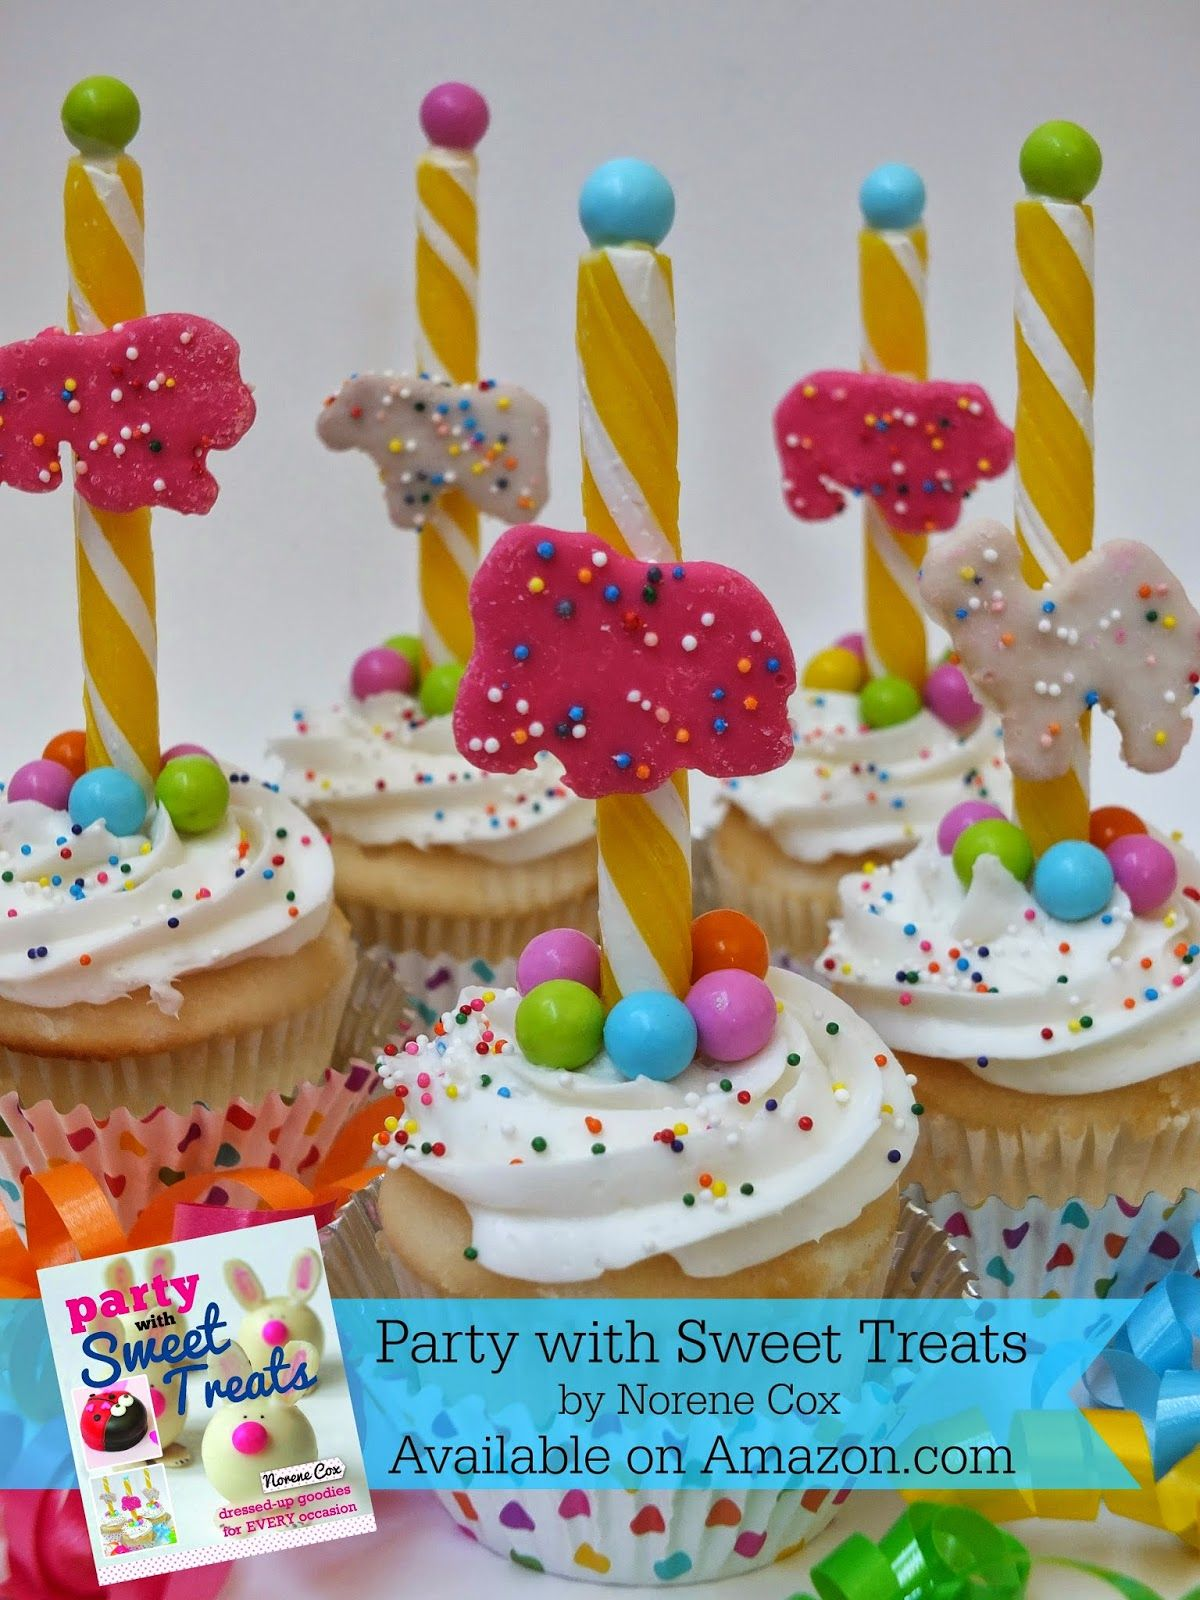 Party with Sweet Treats Book Review Carnival cupcakes